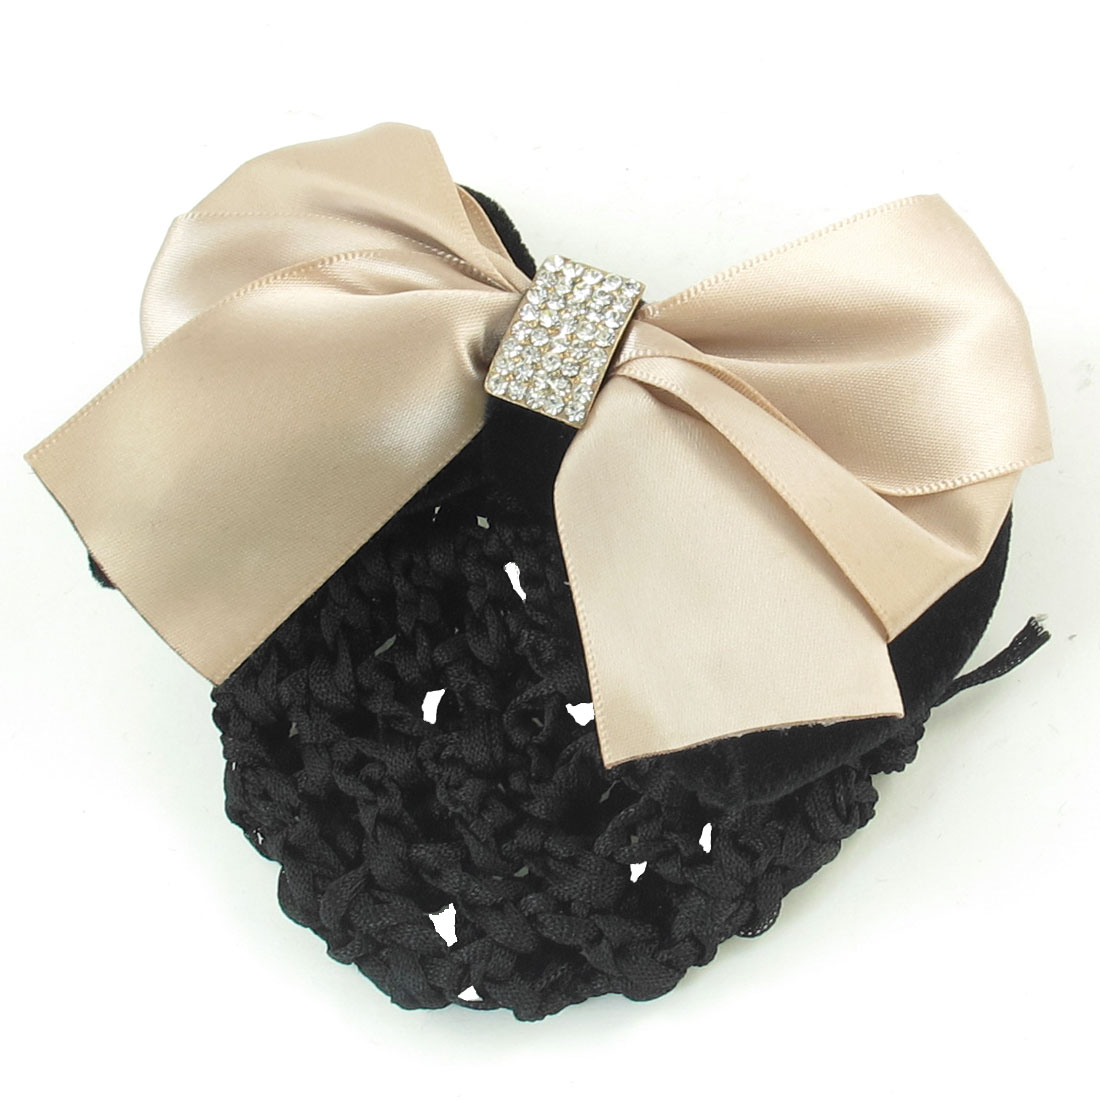 Lady Khaki Polyester Bowknot Detail French Clip Hair Snood Net Barrette